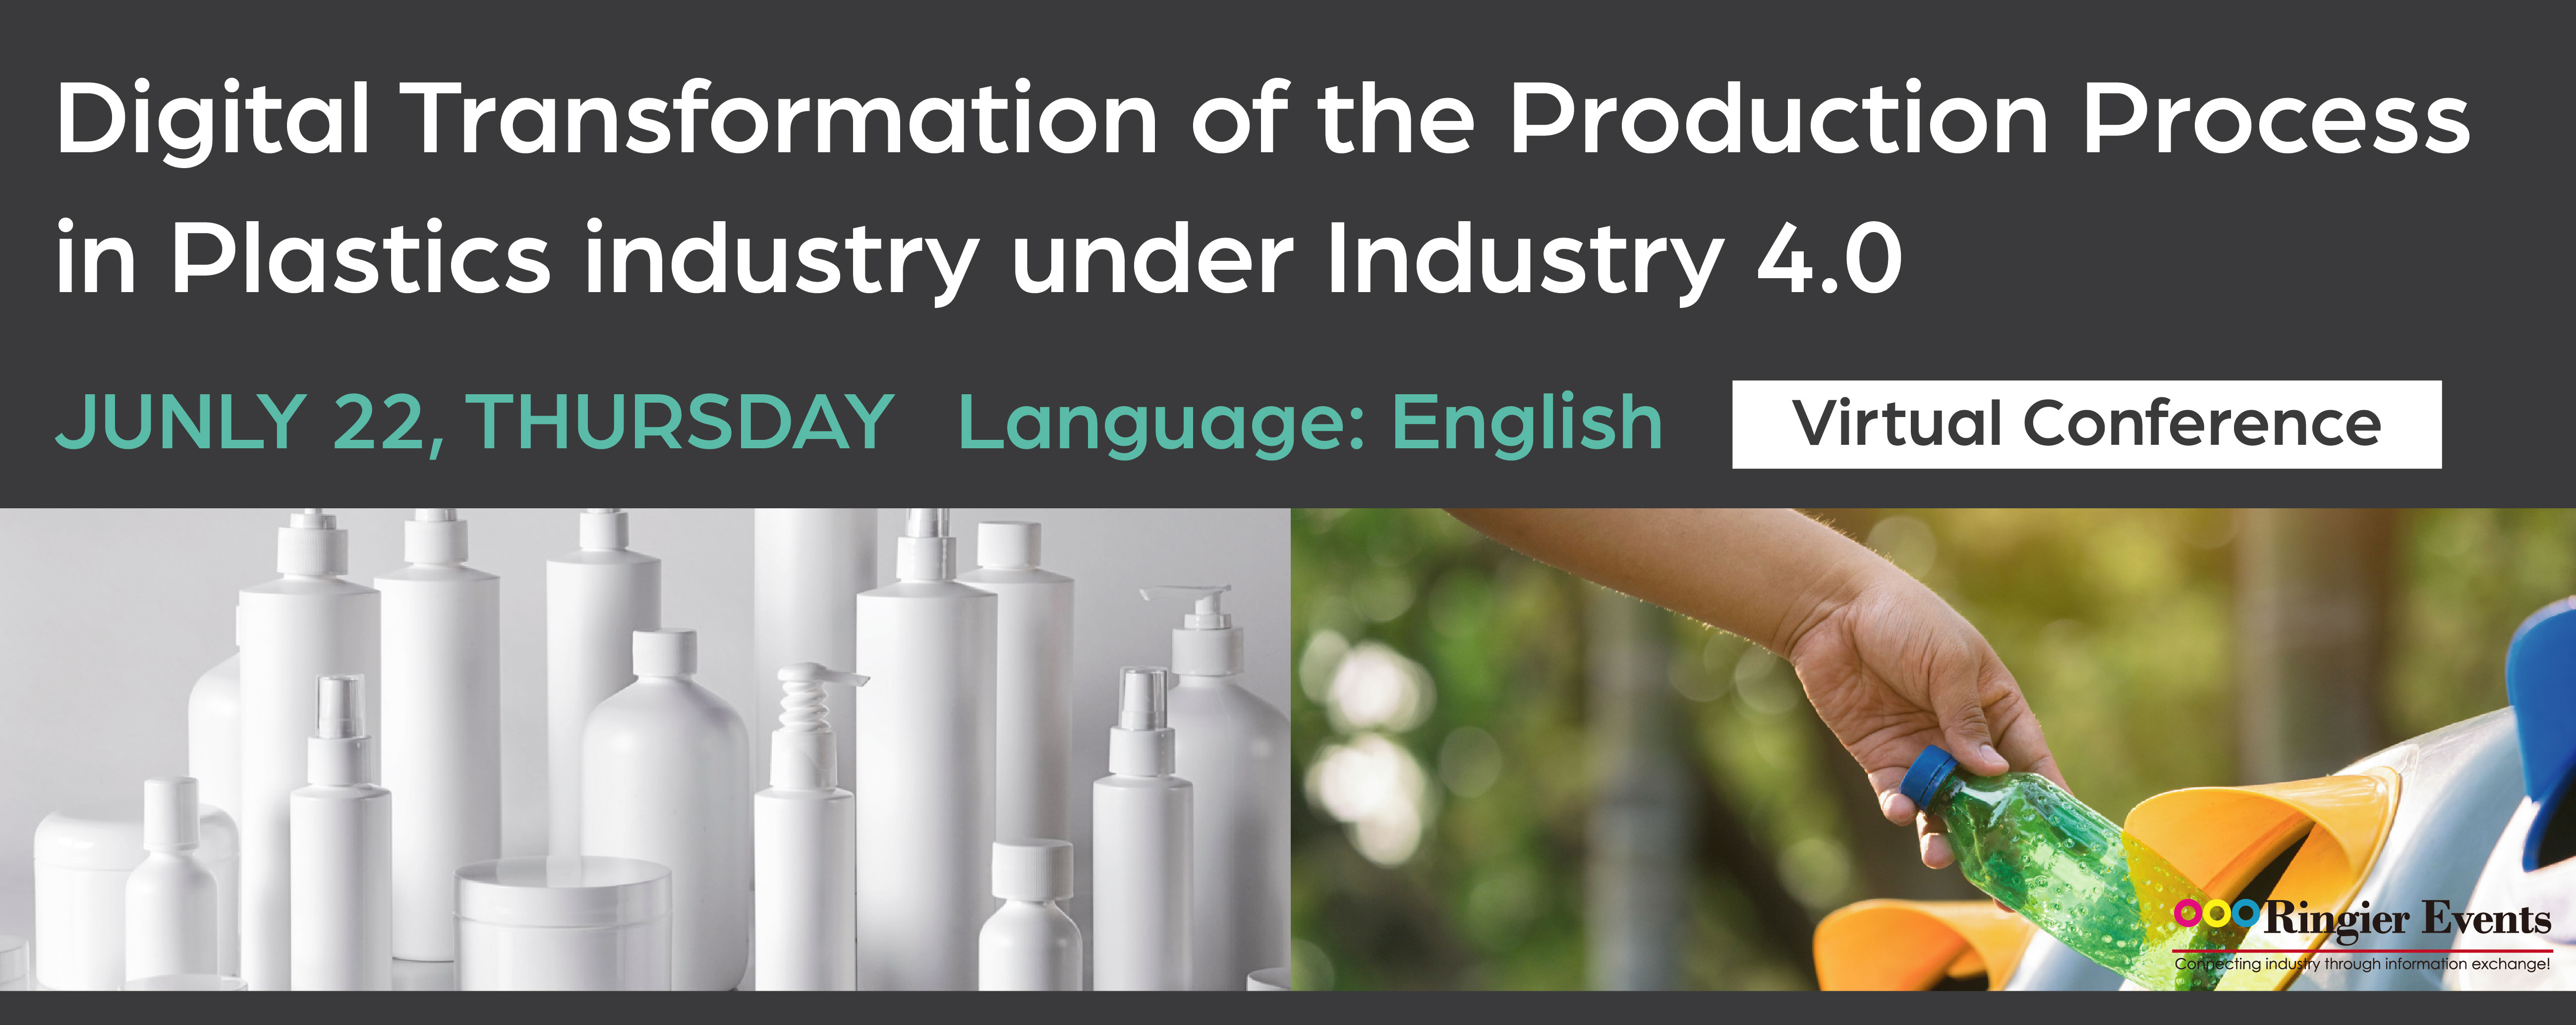 Digital Transformation of the Production Process in Plastics industry under Industry 4.0